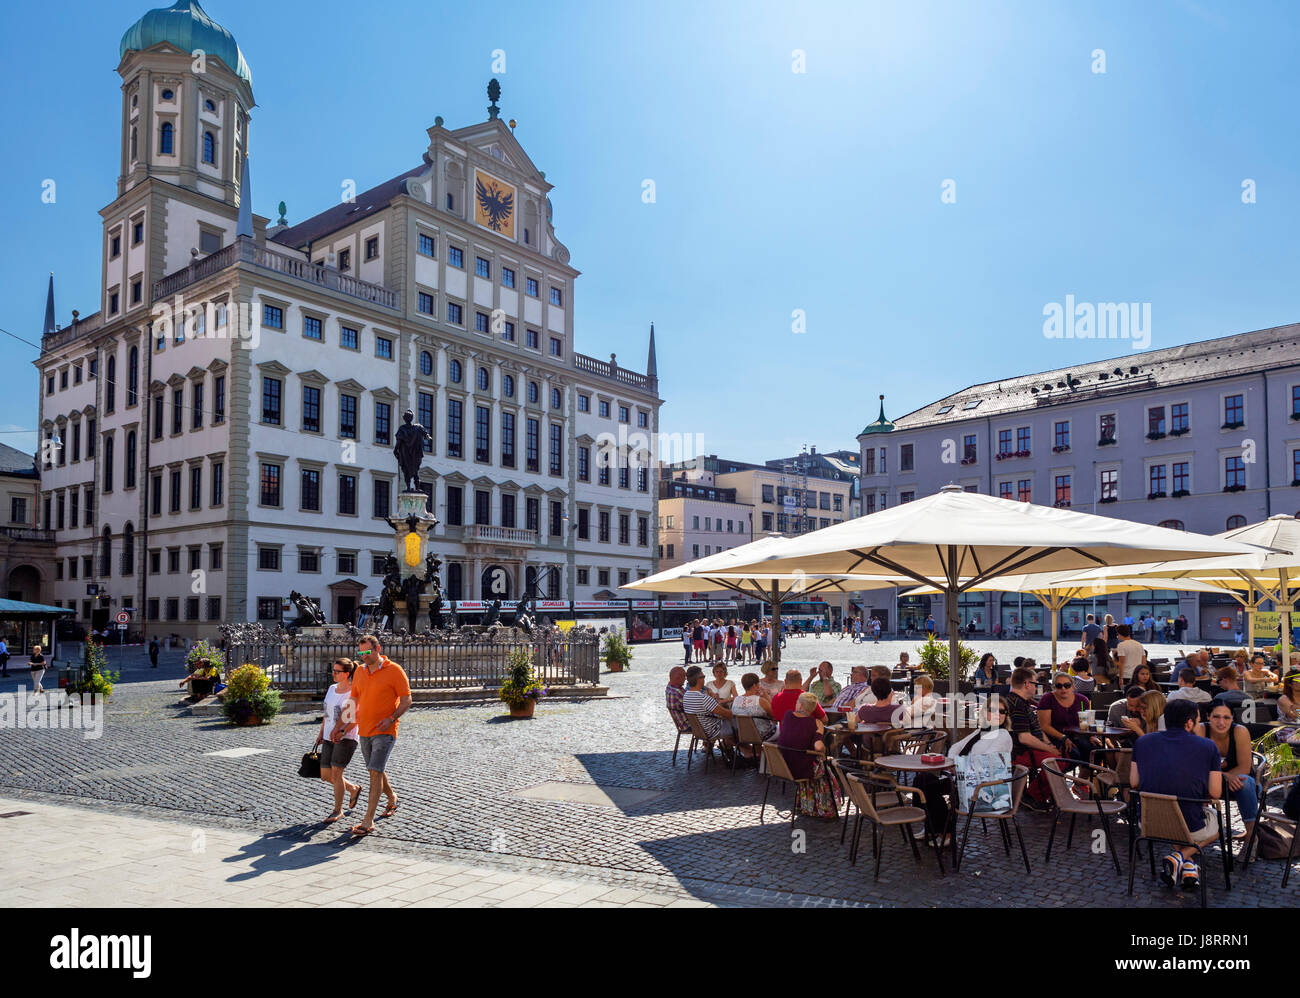 Sidewalk cafe in front of the Town Hall (Rathaus), Rathausplatz, Augsburg, Bavaria, Germany - Stock Image